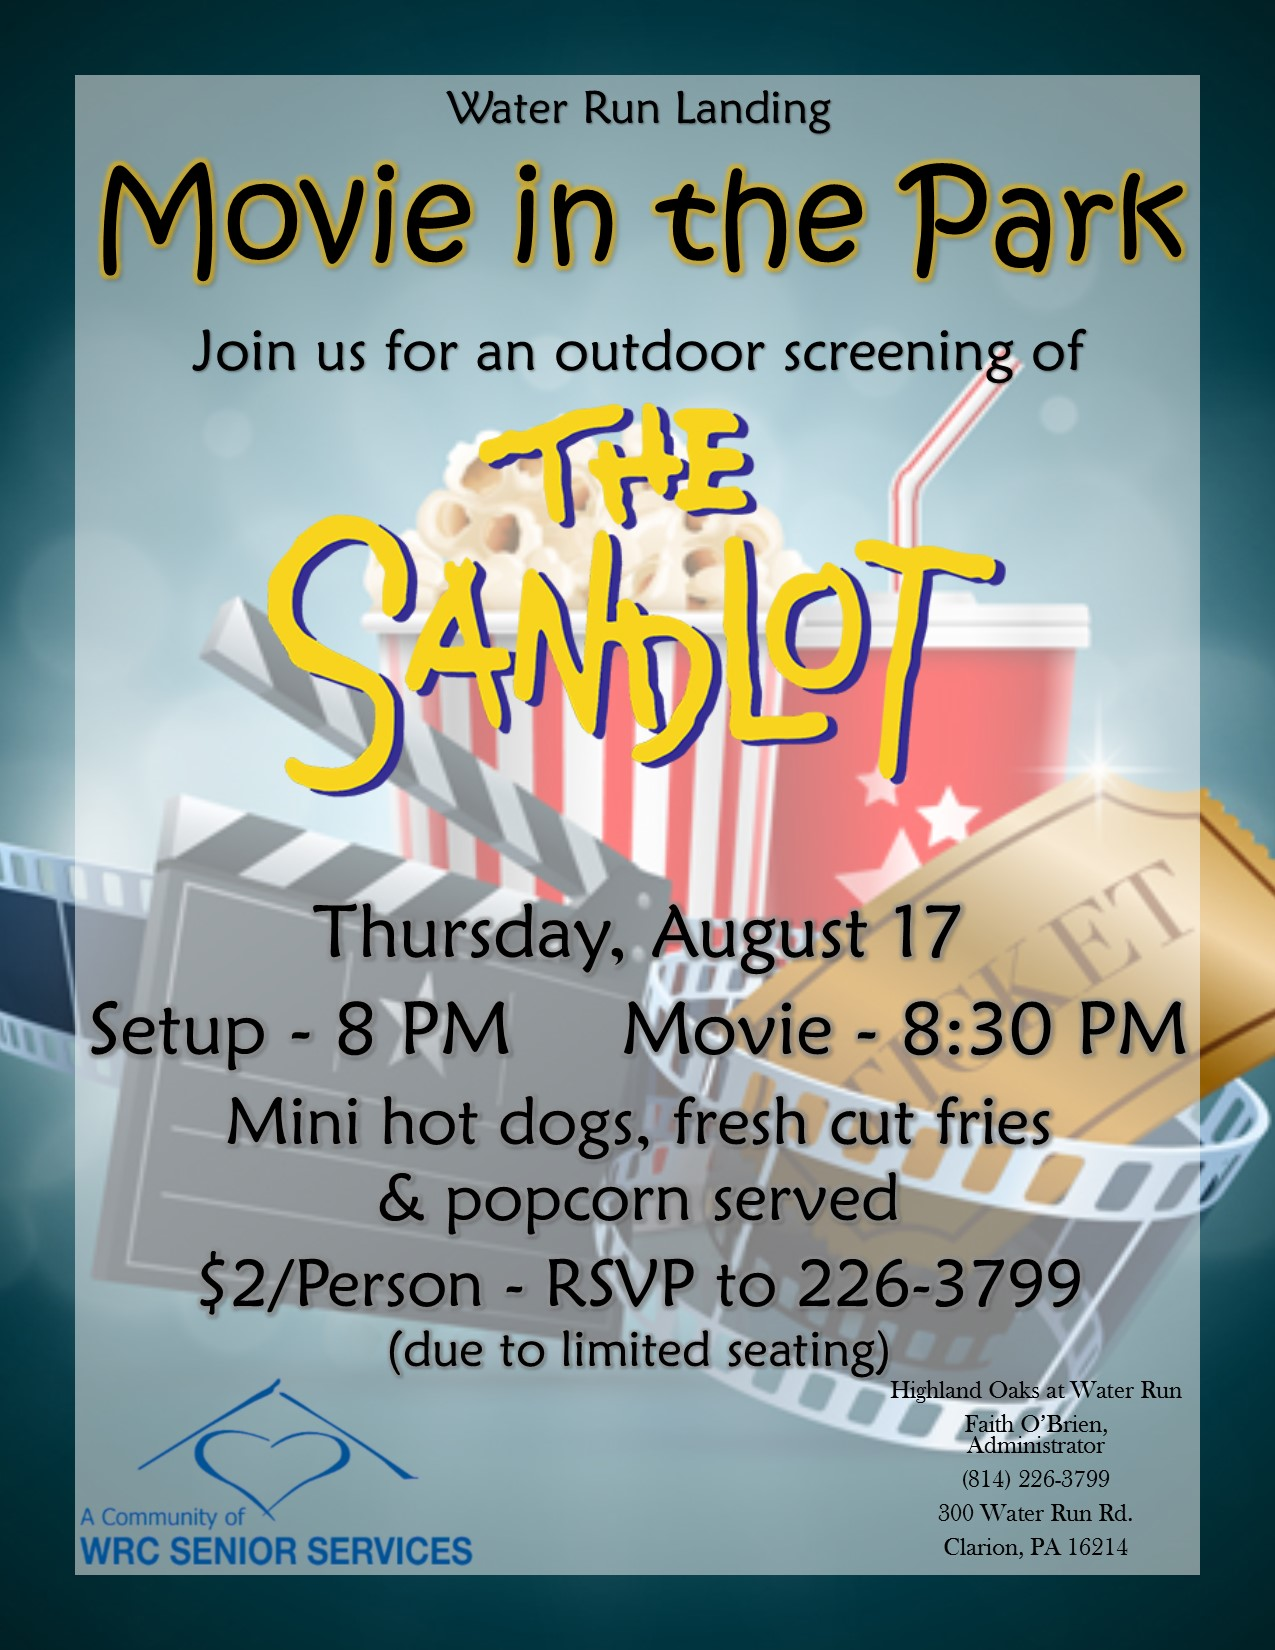 Water Run Landing to Host Movie in the Park on August 17 ...